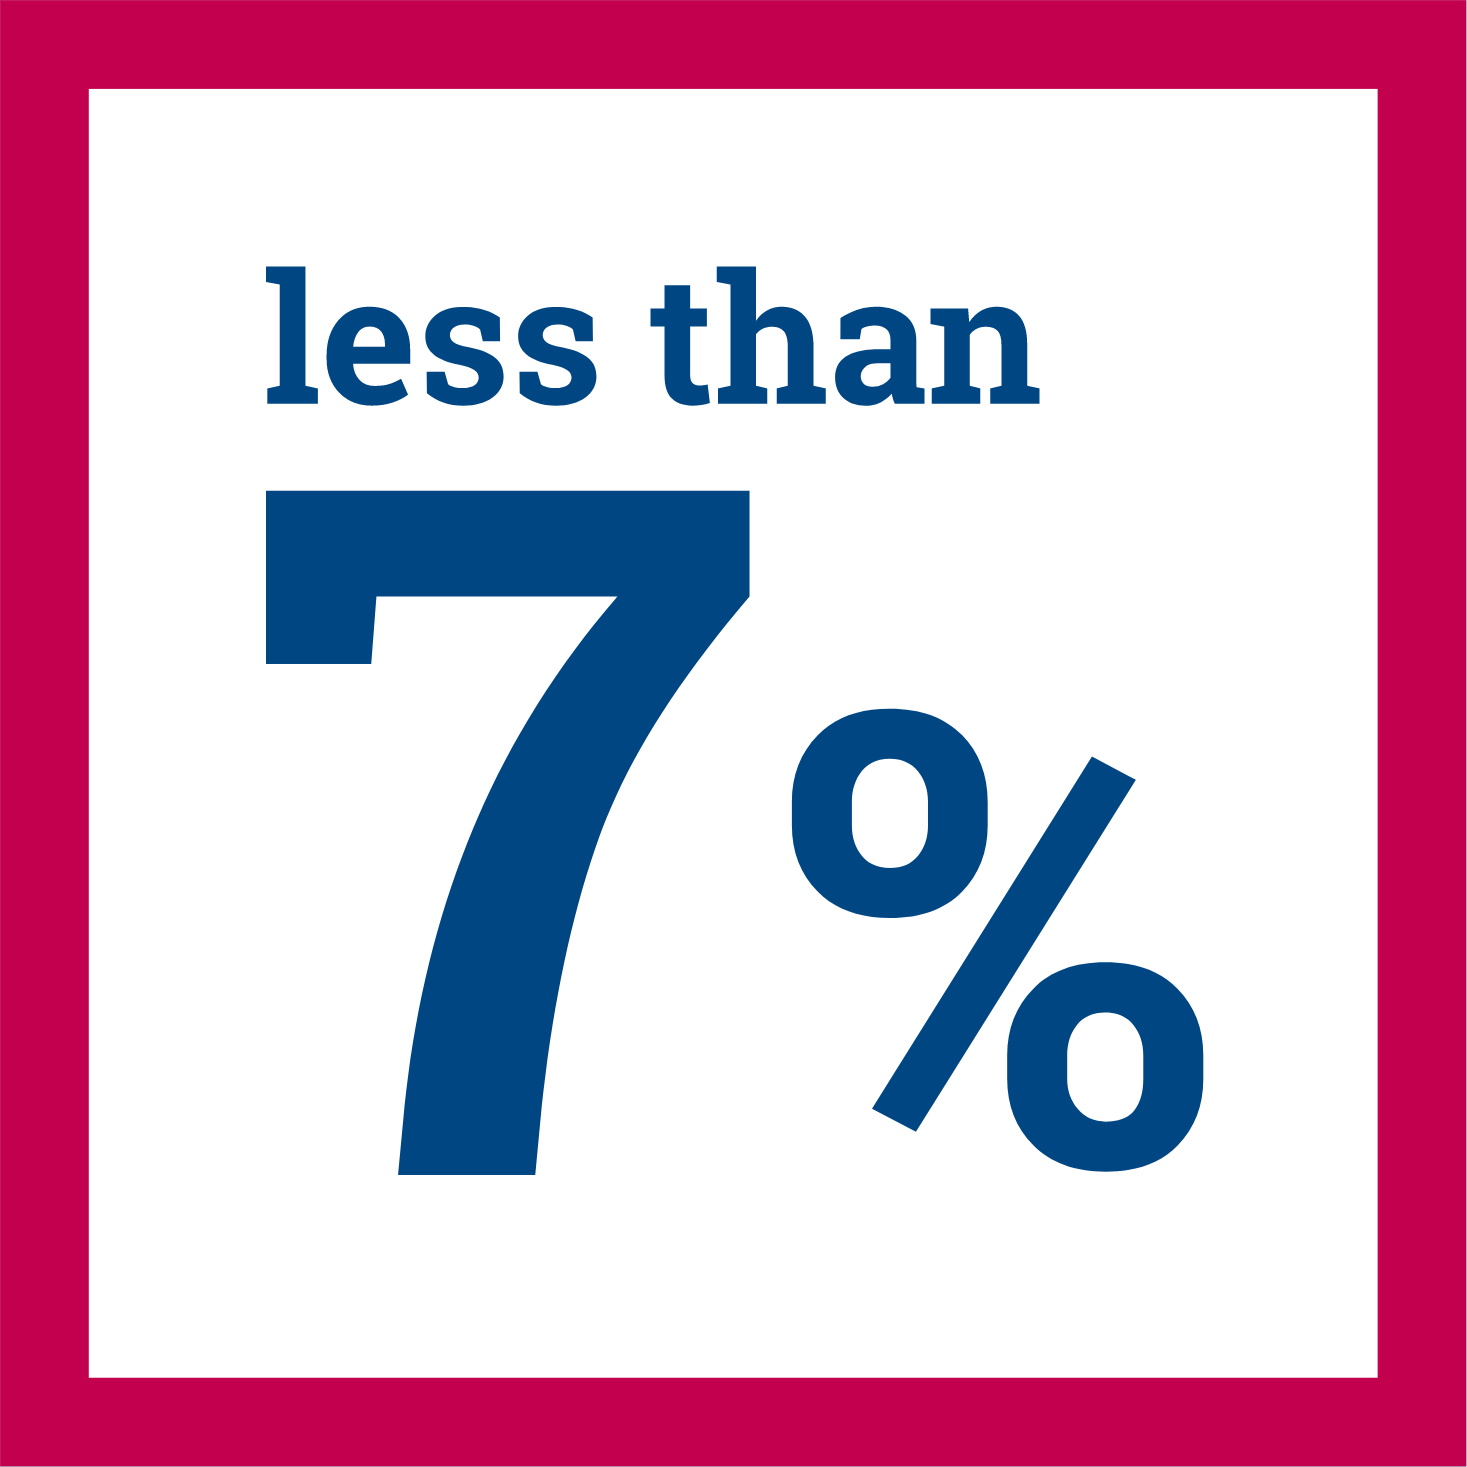 Less than 7% of minority households invest in the stock market in non-retirement accounts.